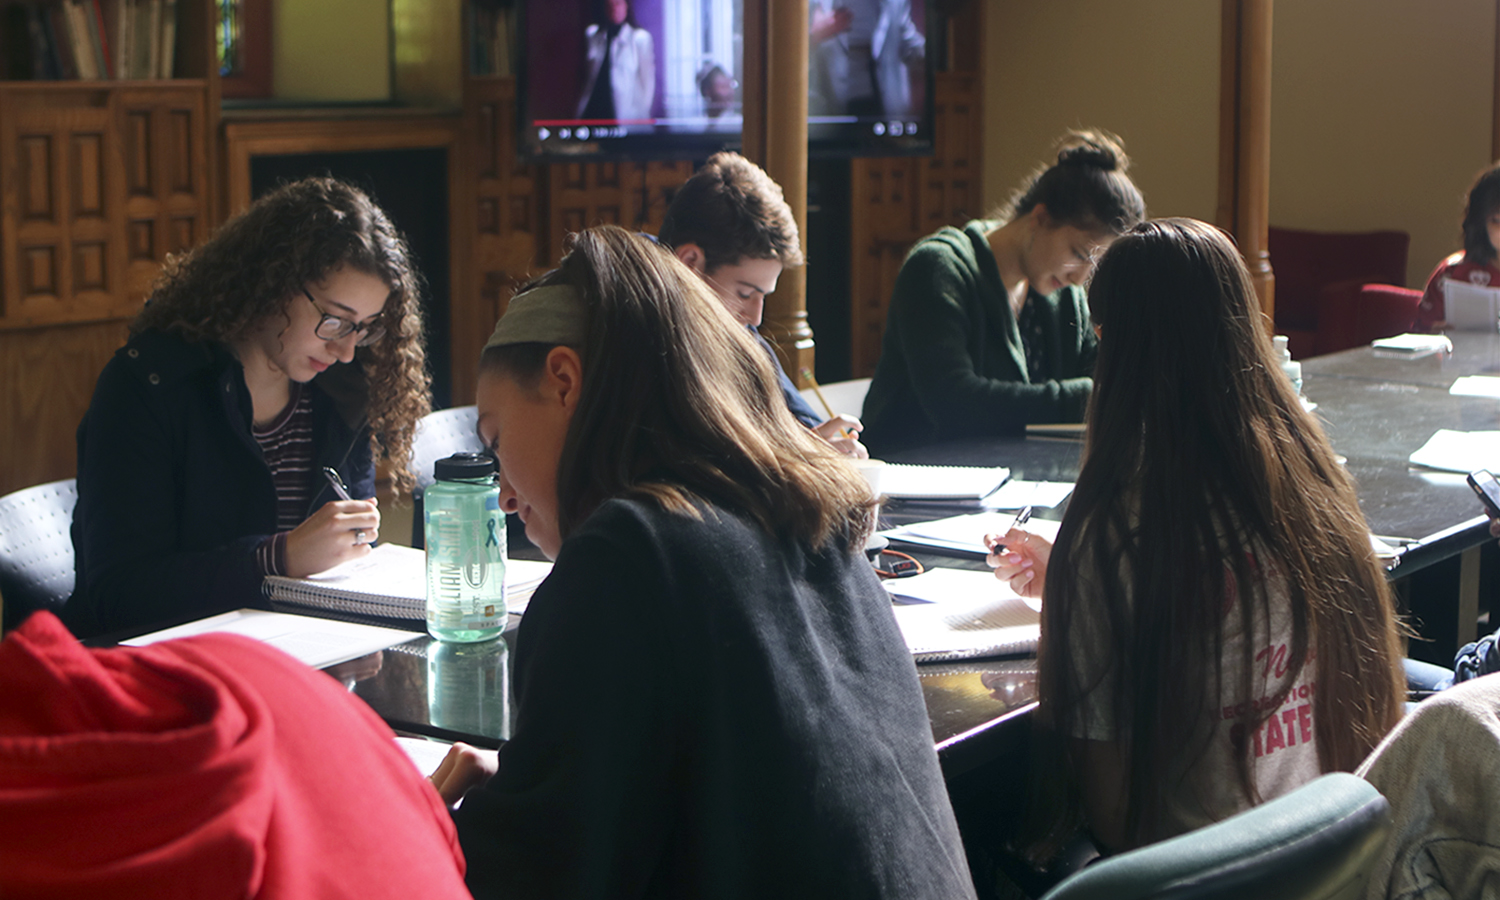 Lilly Shea '20 works on a writing assignment as part of a creative non-fiction workshop led by graduate students from the Creative Writing Program at University of Iowa â.